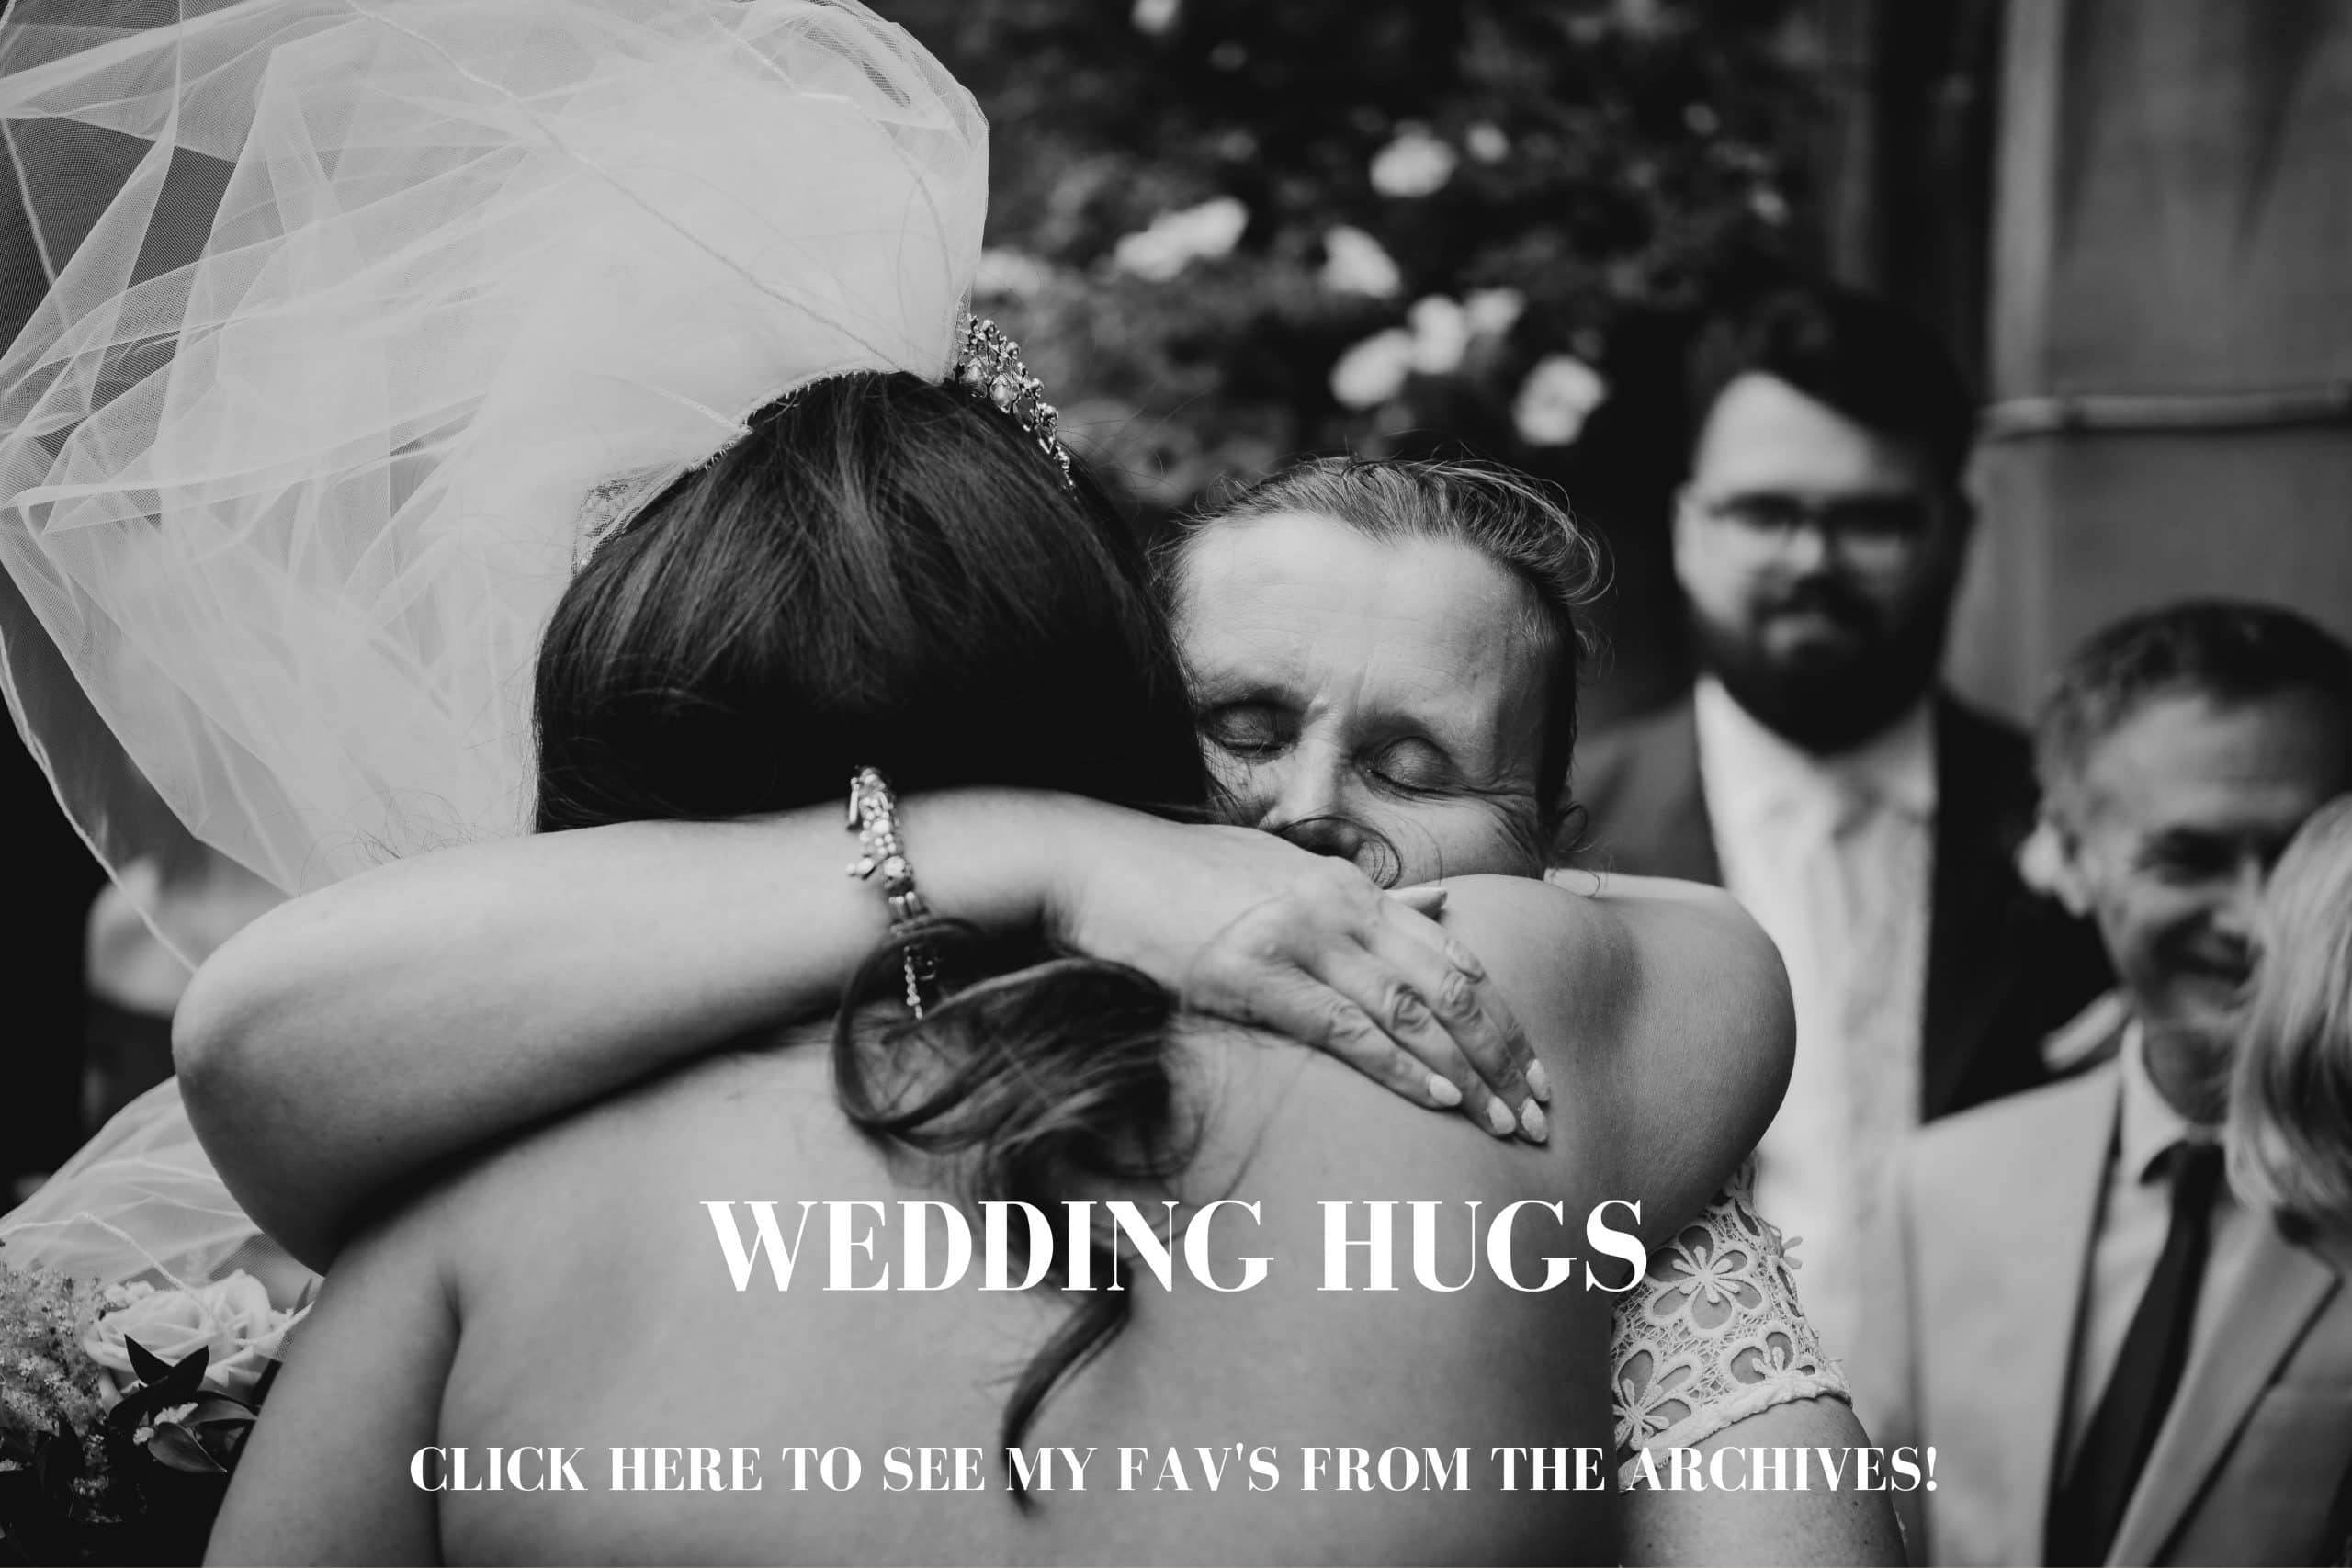 Emotional hugs at weddings by Andy Saywell - A Wedding photographer based in the UK